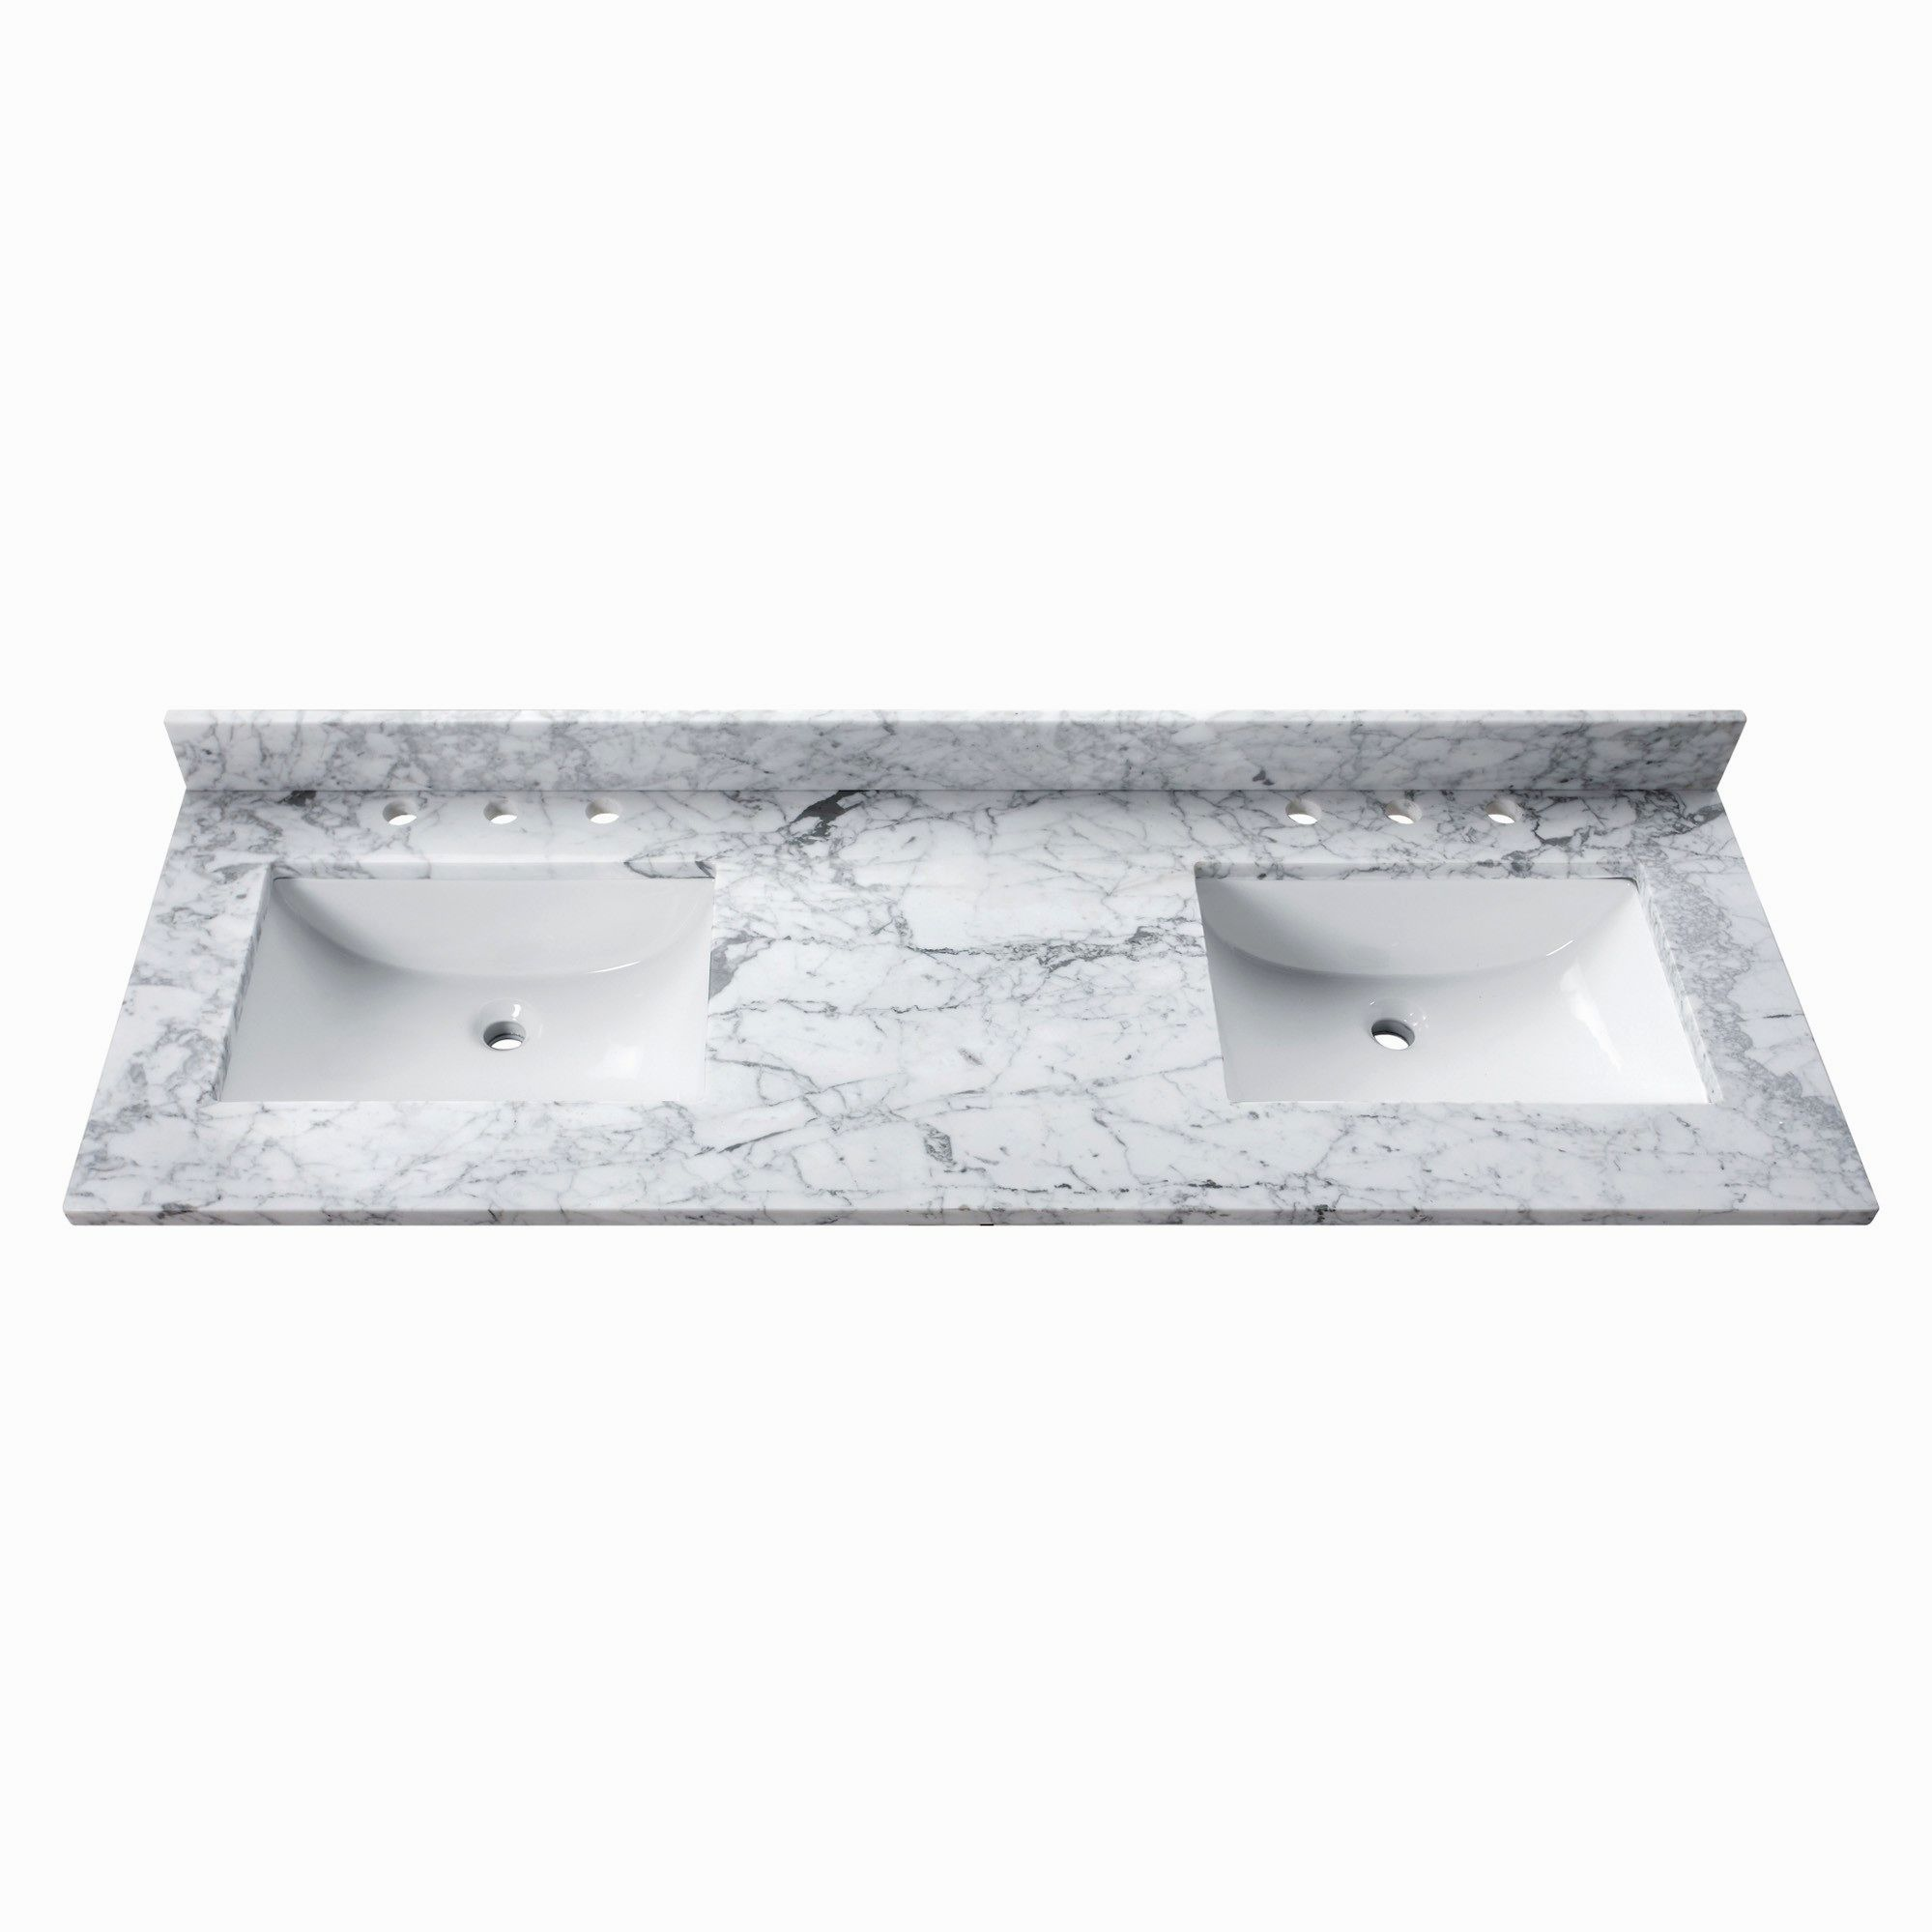 wonderful marble bathroom sink collection-Beautiful Marble Bathroom Sink Design